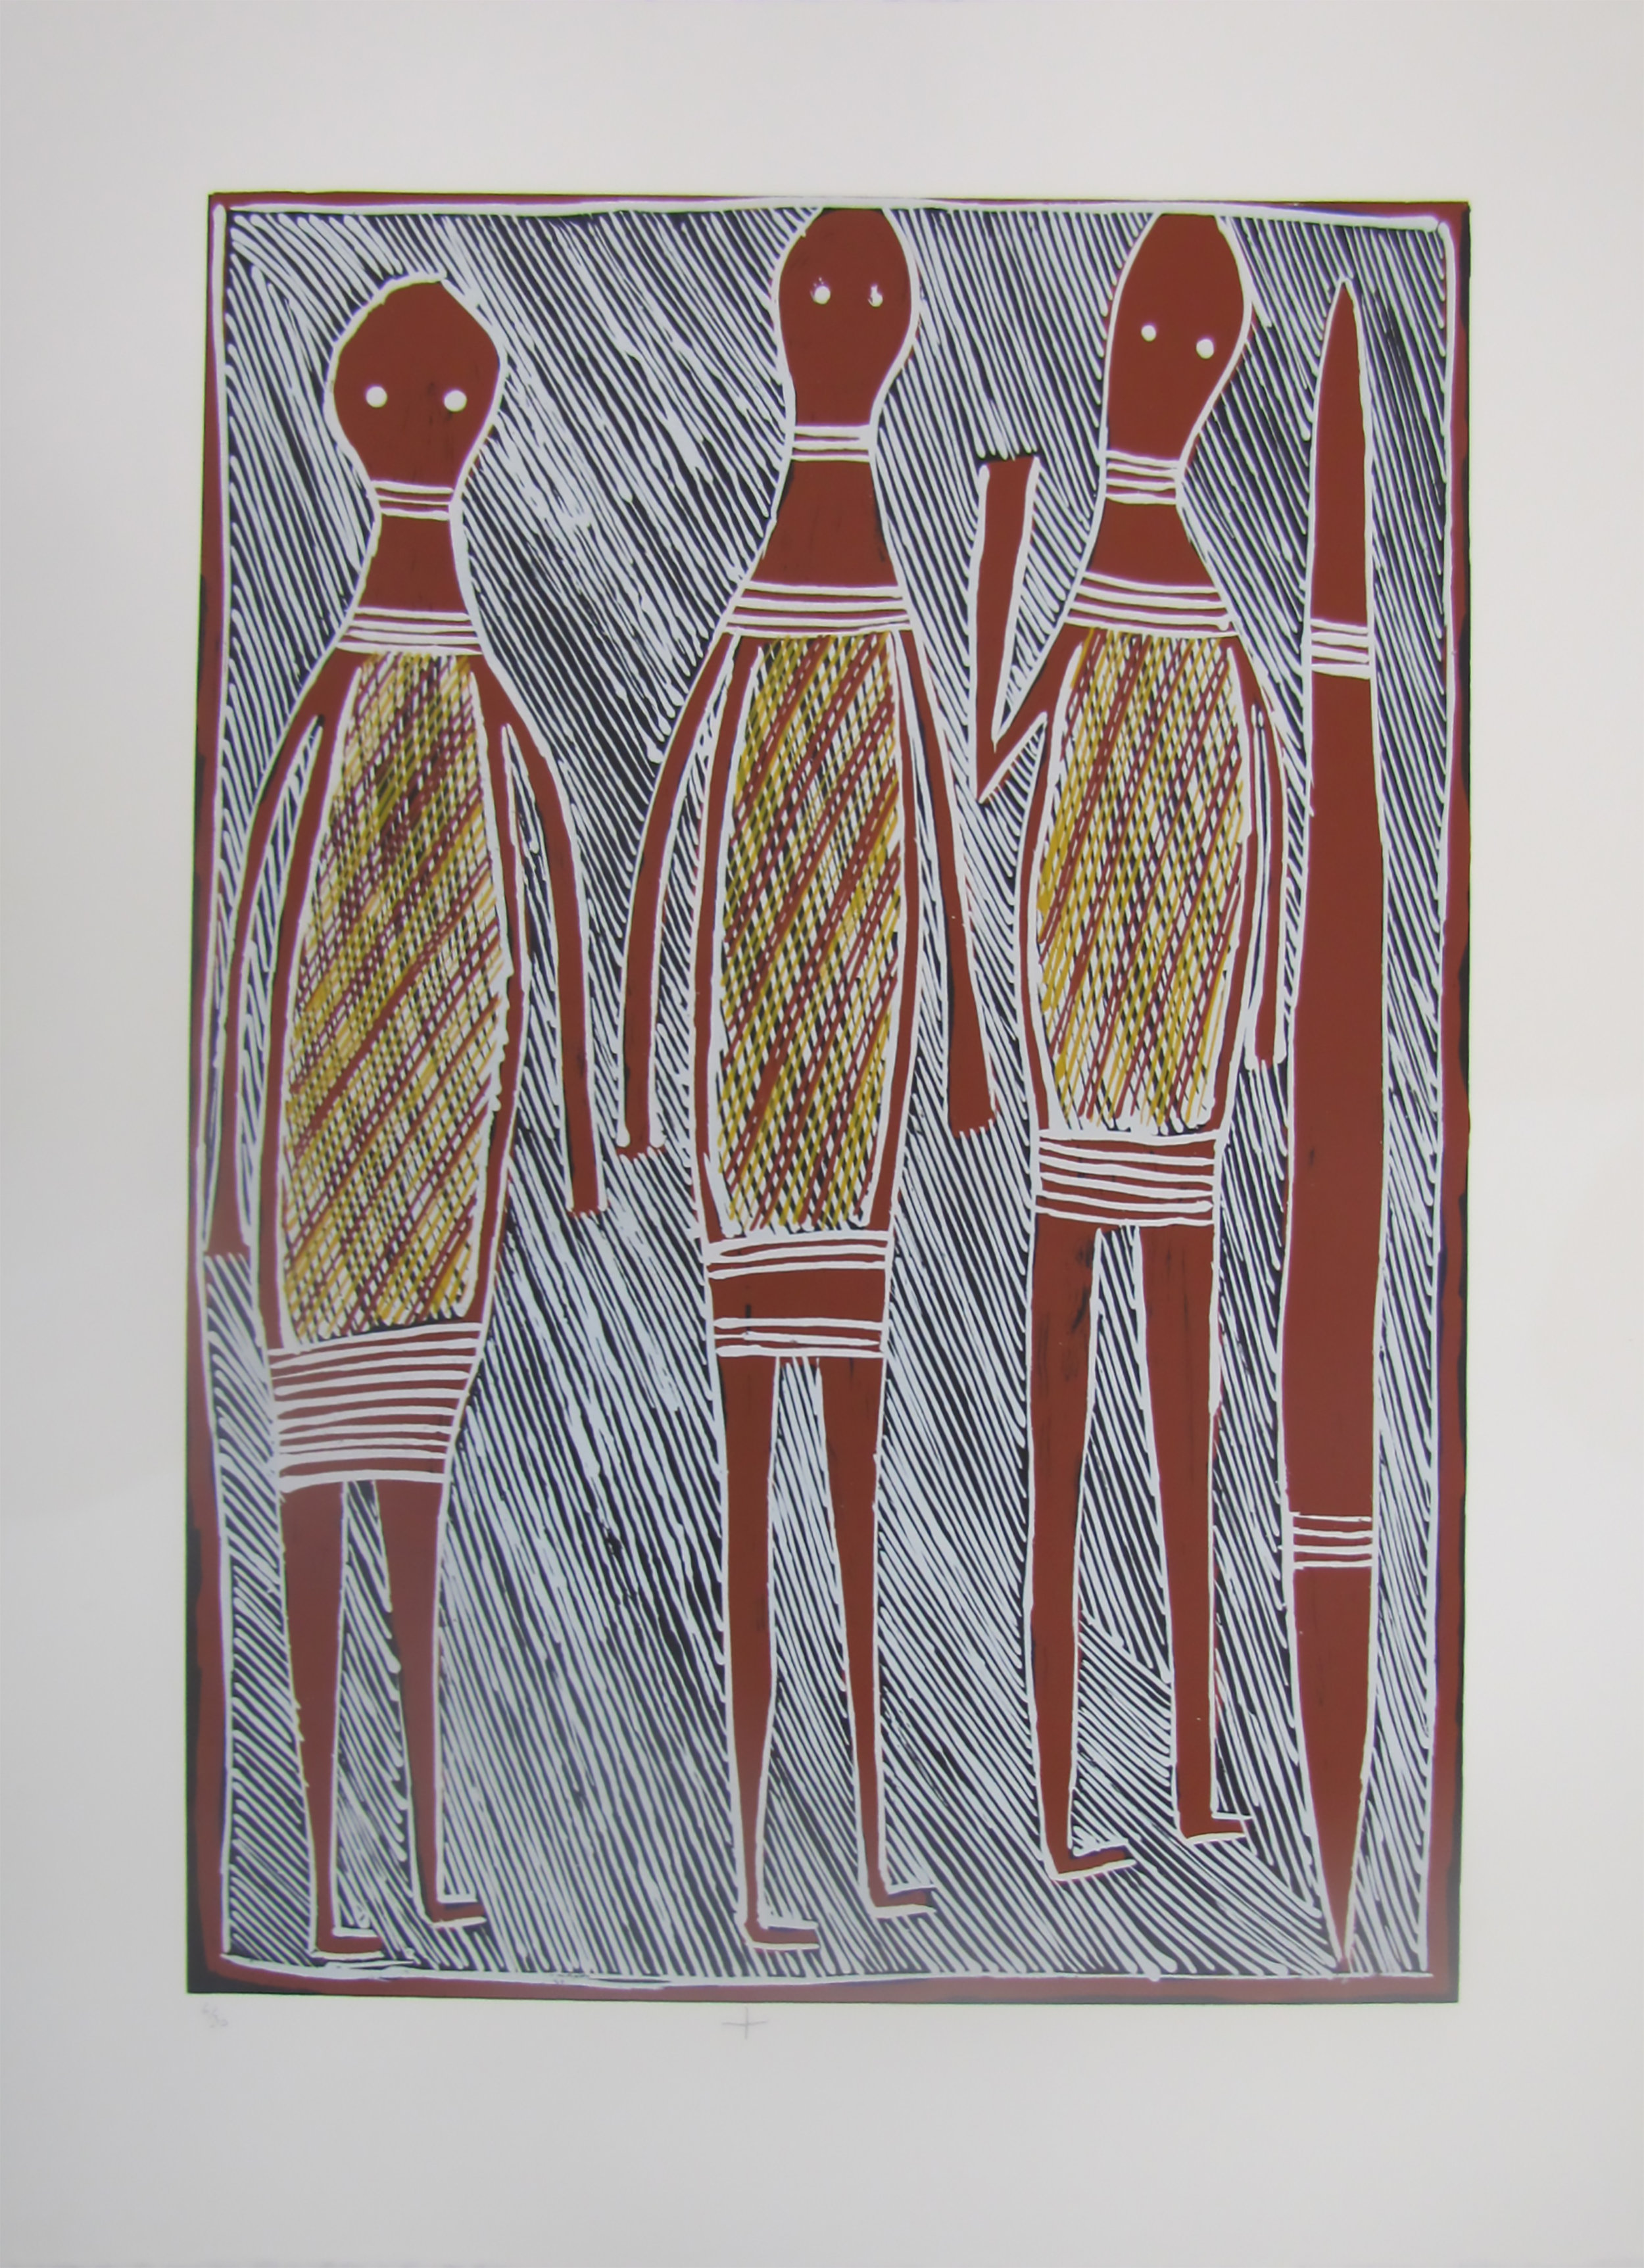 Philip Gudthaygudthay,  Wagilag Ga Wititj Dhawu. 2016  Silkscreen. Ed 9/30,  59 x 42 cm , $350 (unframed)  $550 (framed)   Editions 6/30, 7/30 & 8/30 (unframed) also available